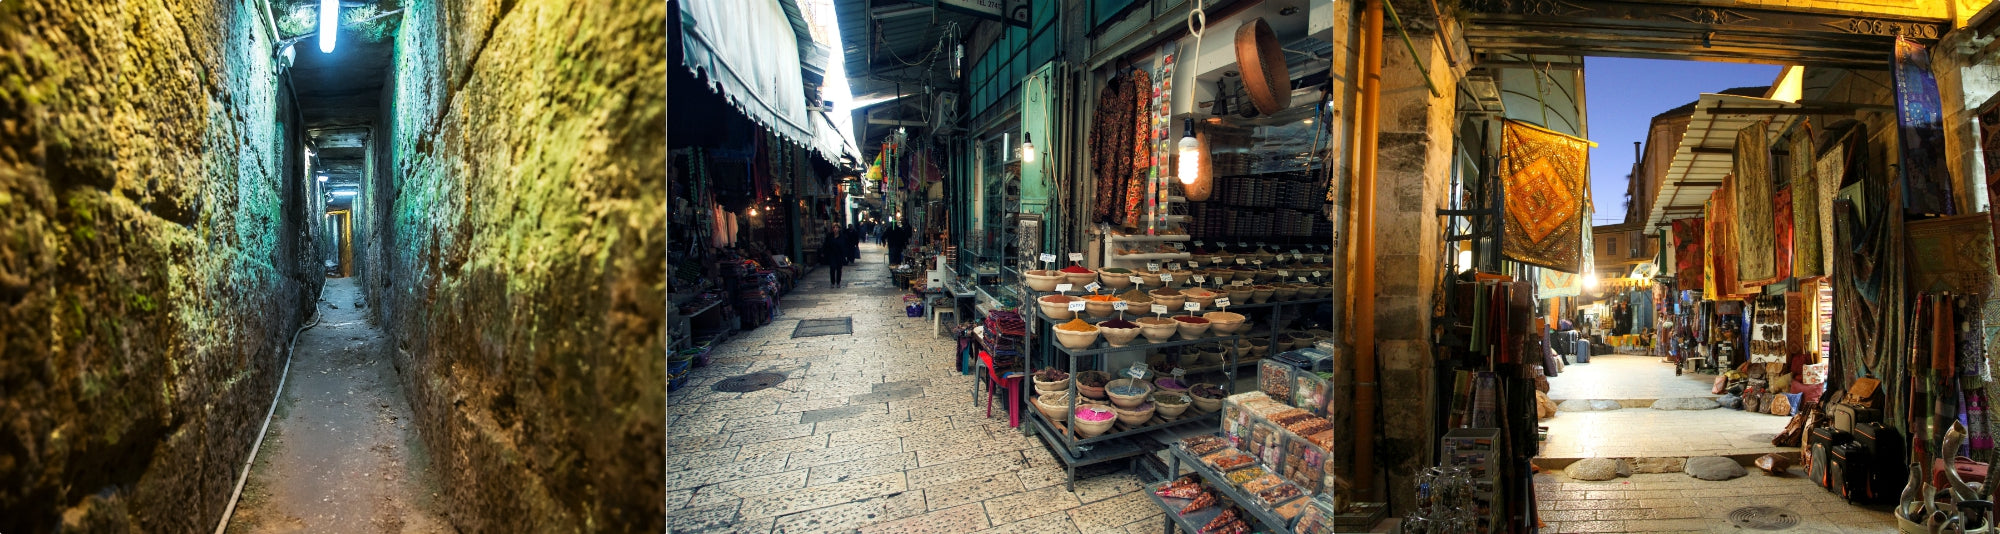 The narrow alleys that lead to Temple Mount and the Souq